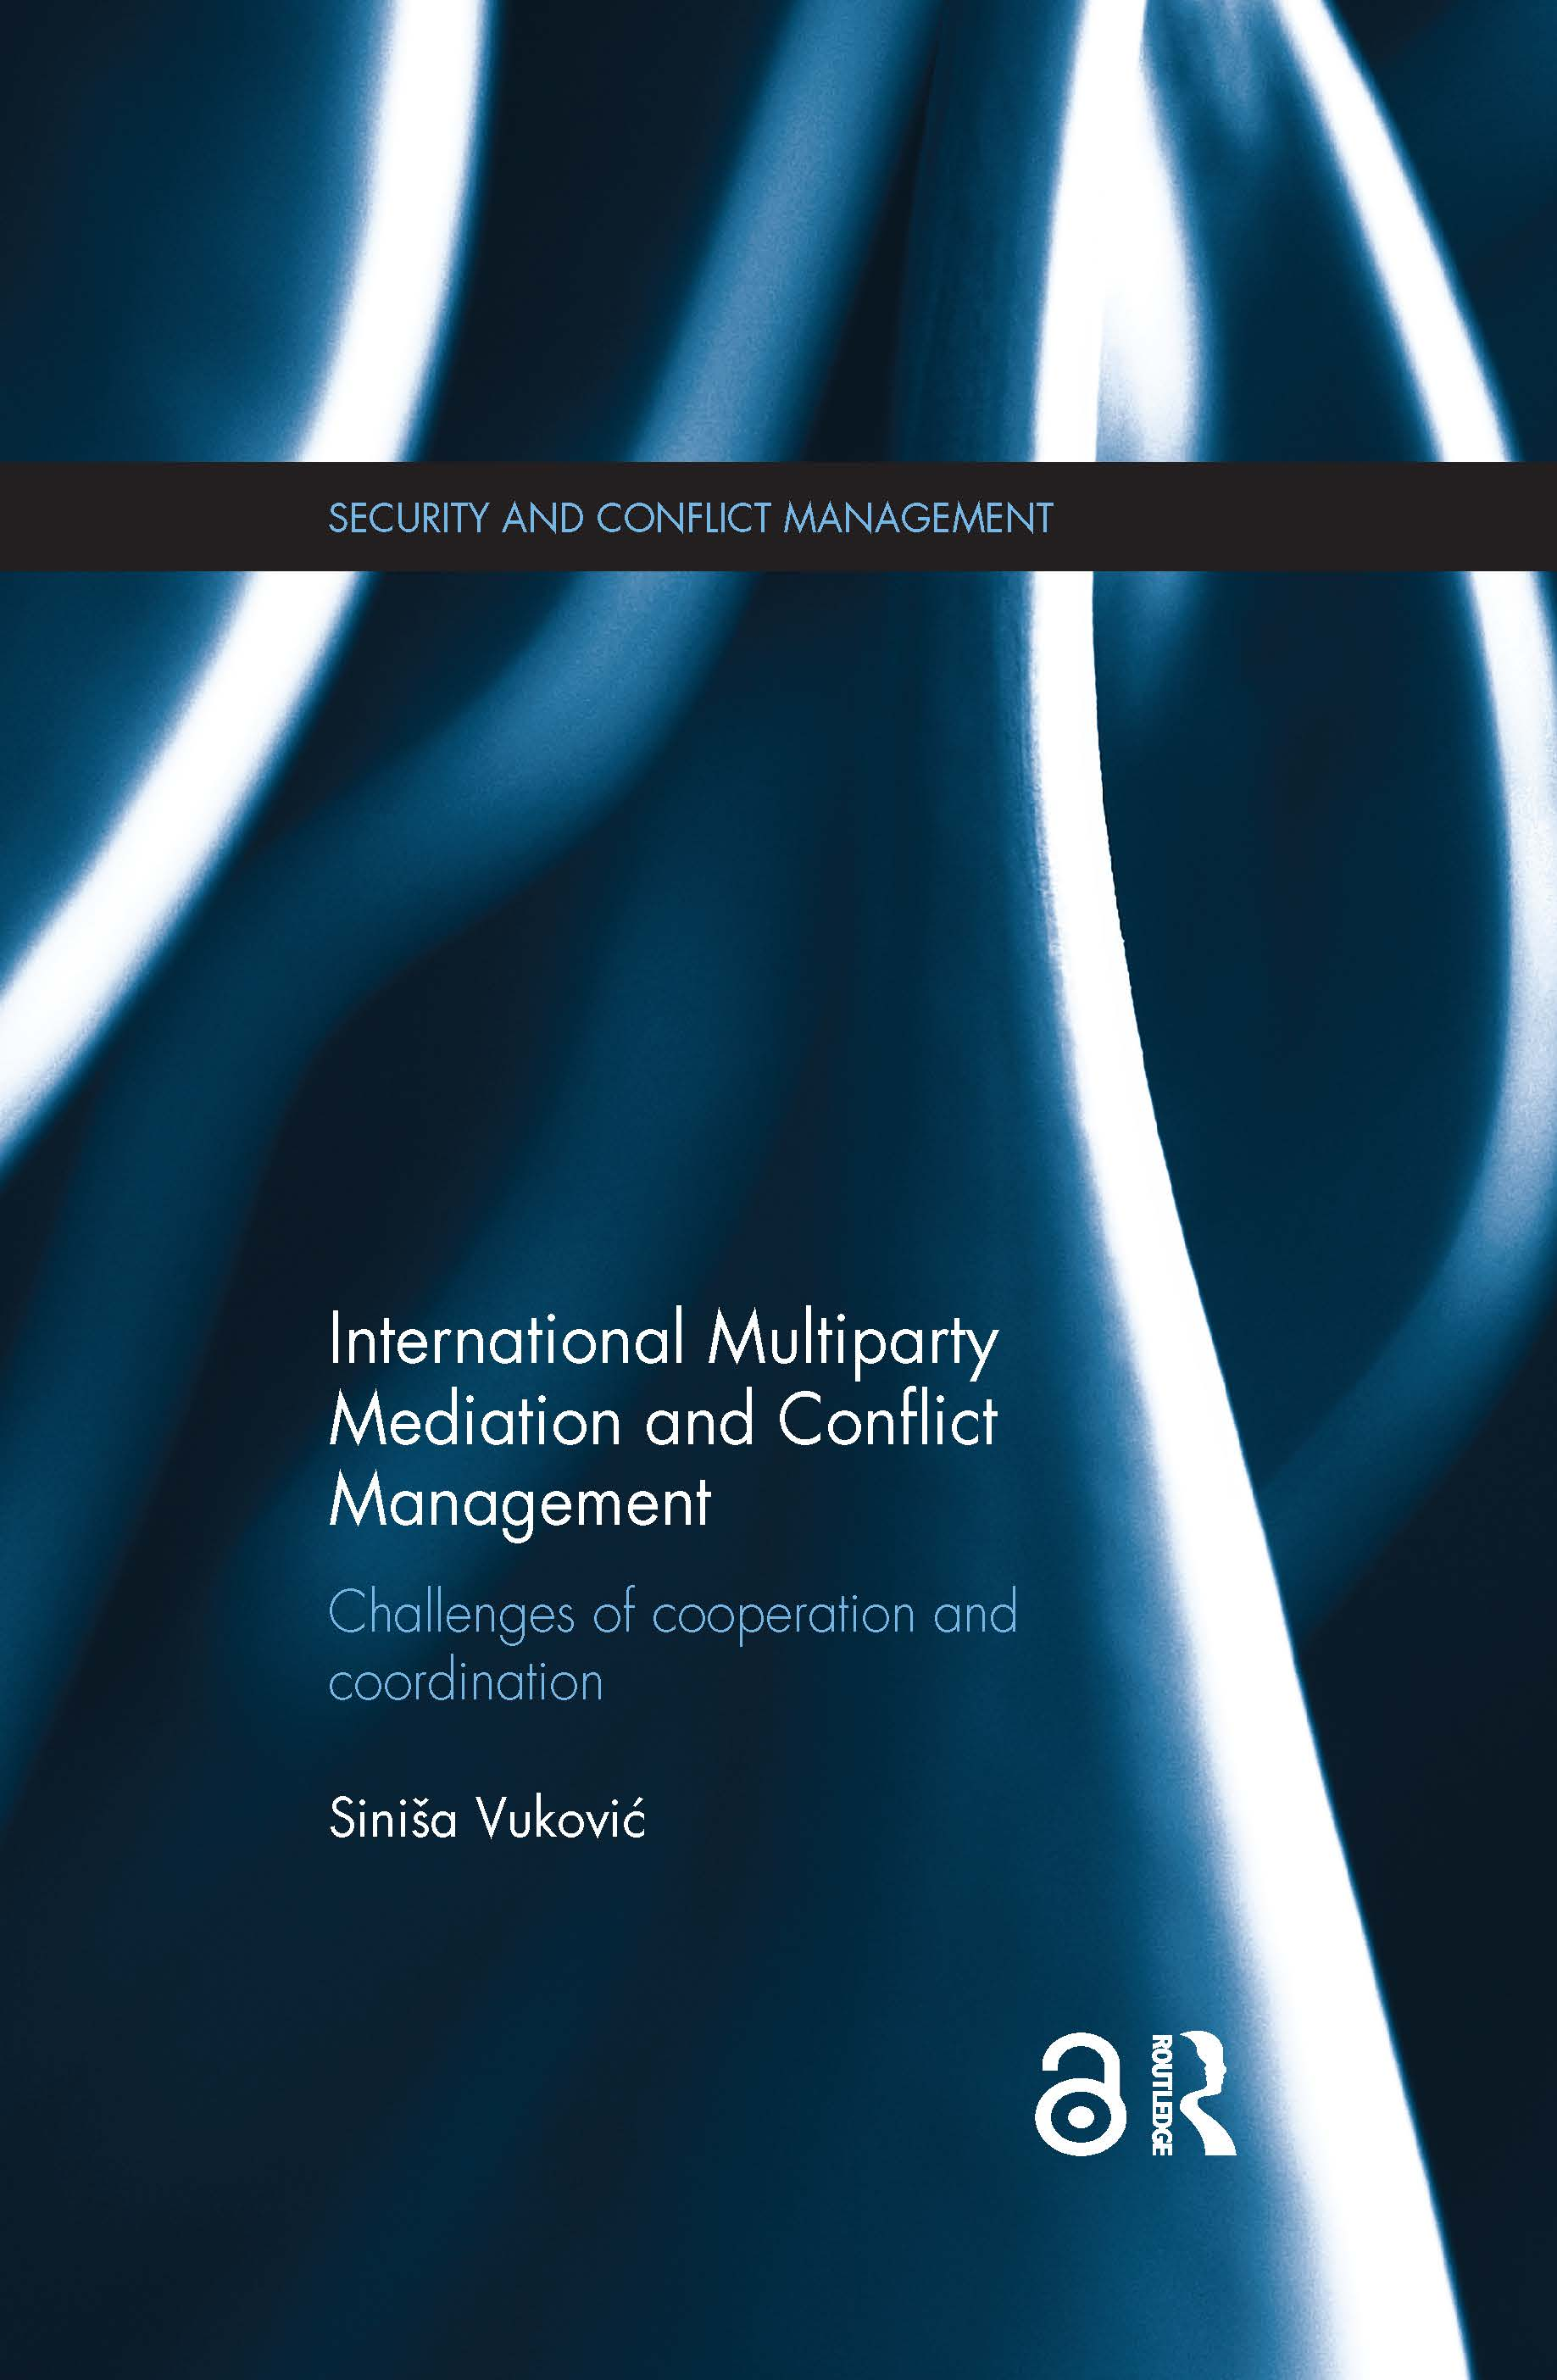 International Multiparty Mediation and Conflict Management